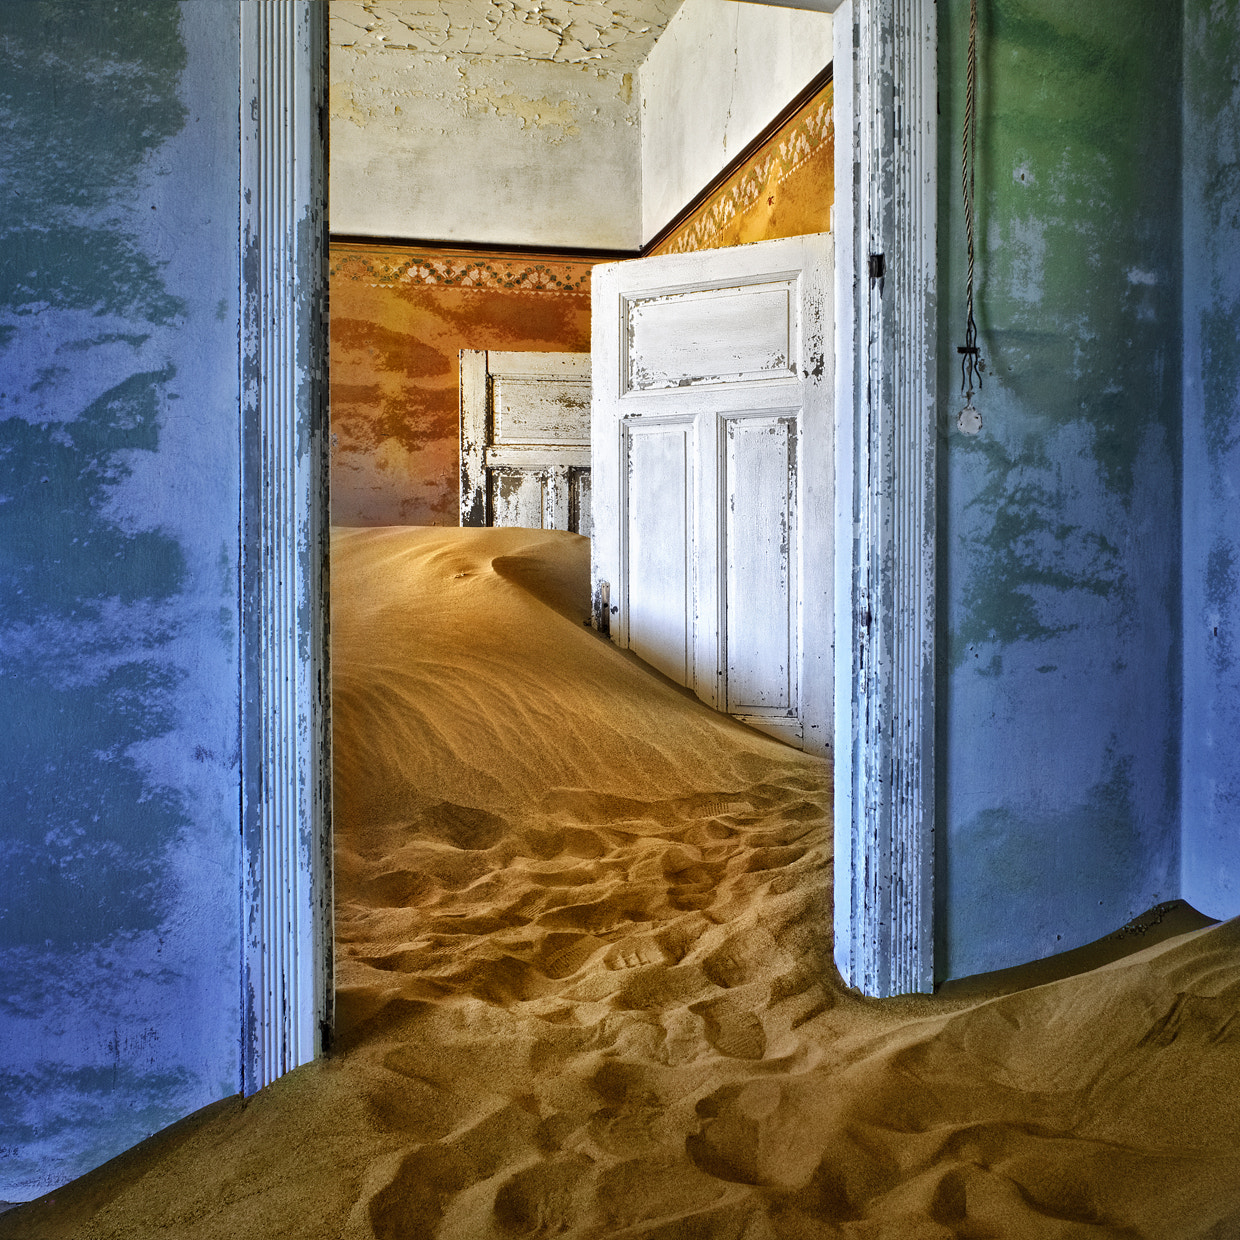 Photograph Ghost house by Patrick Galibert on 500px